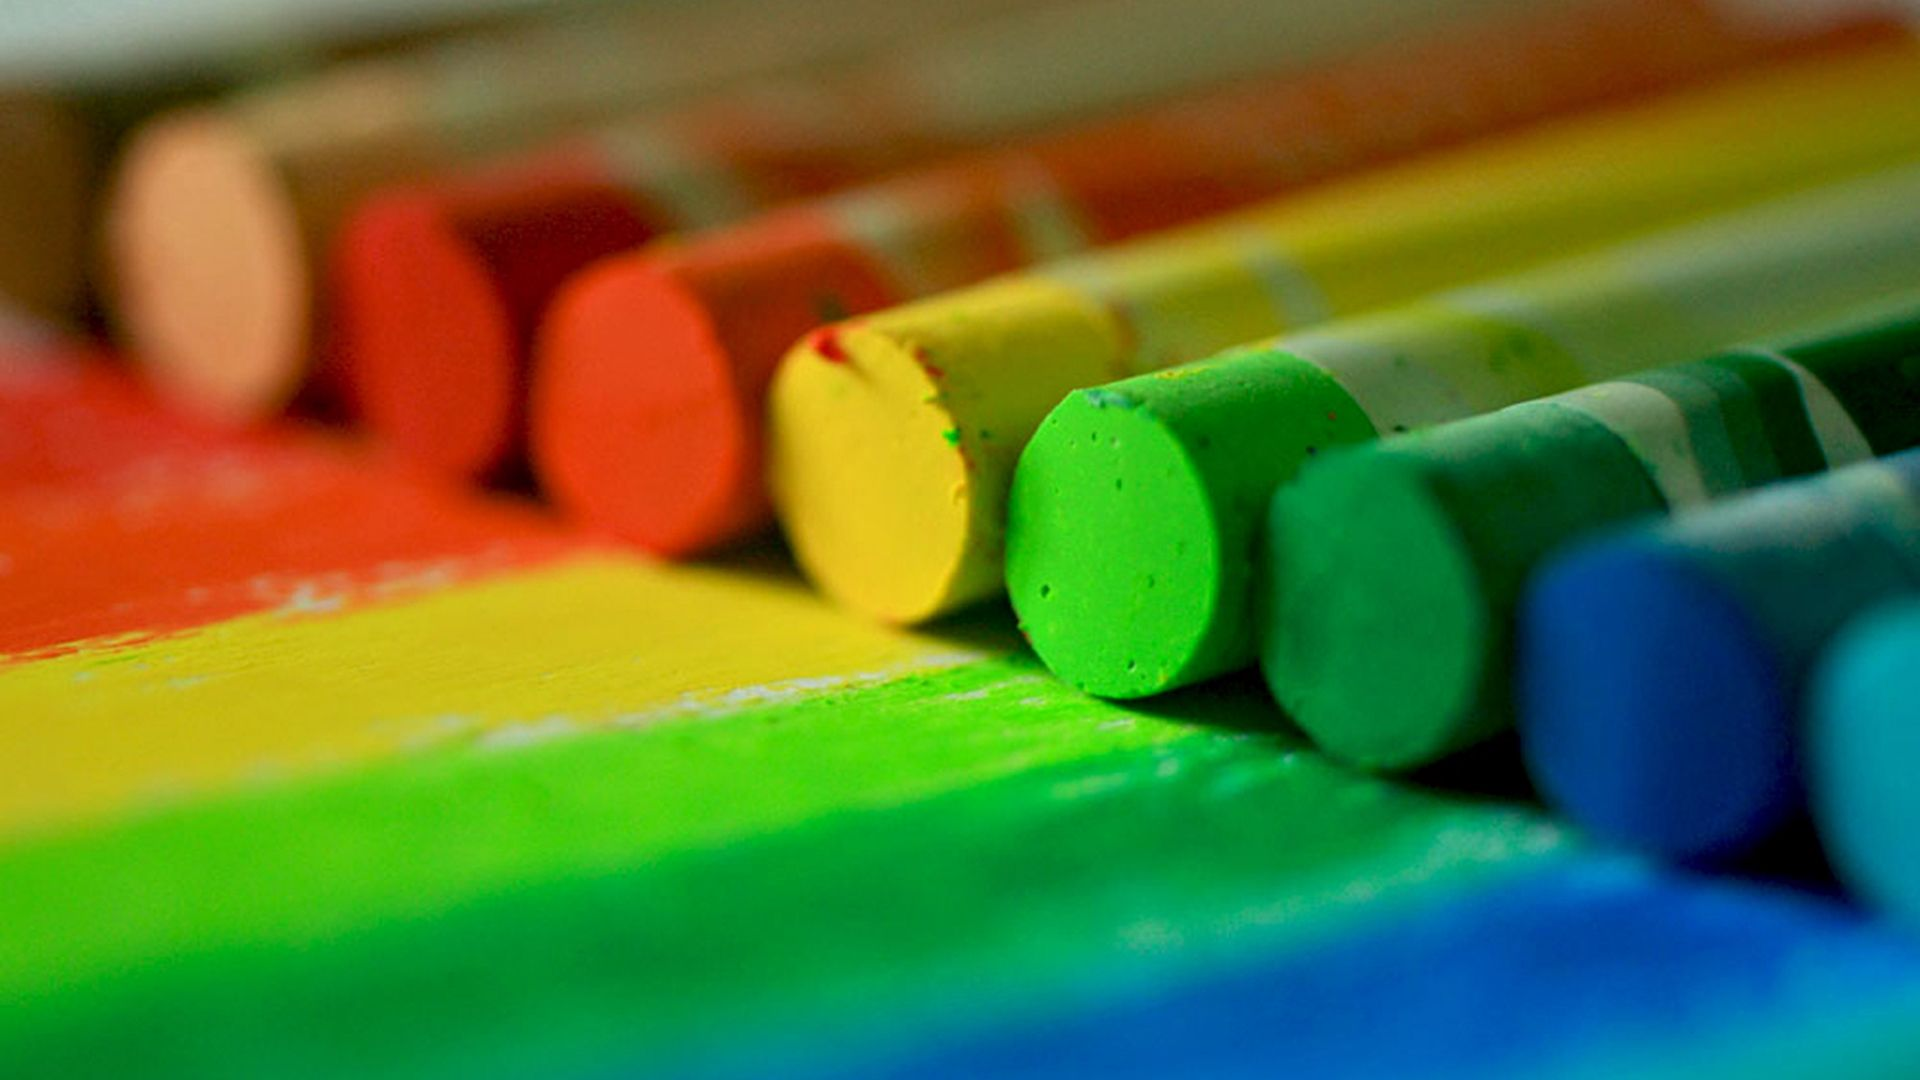 colouring pencils images